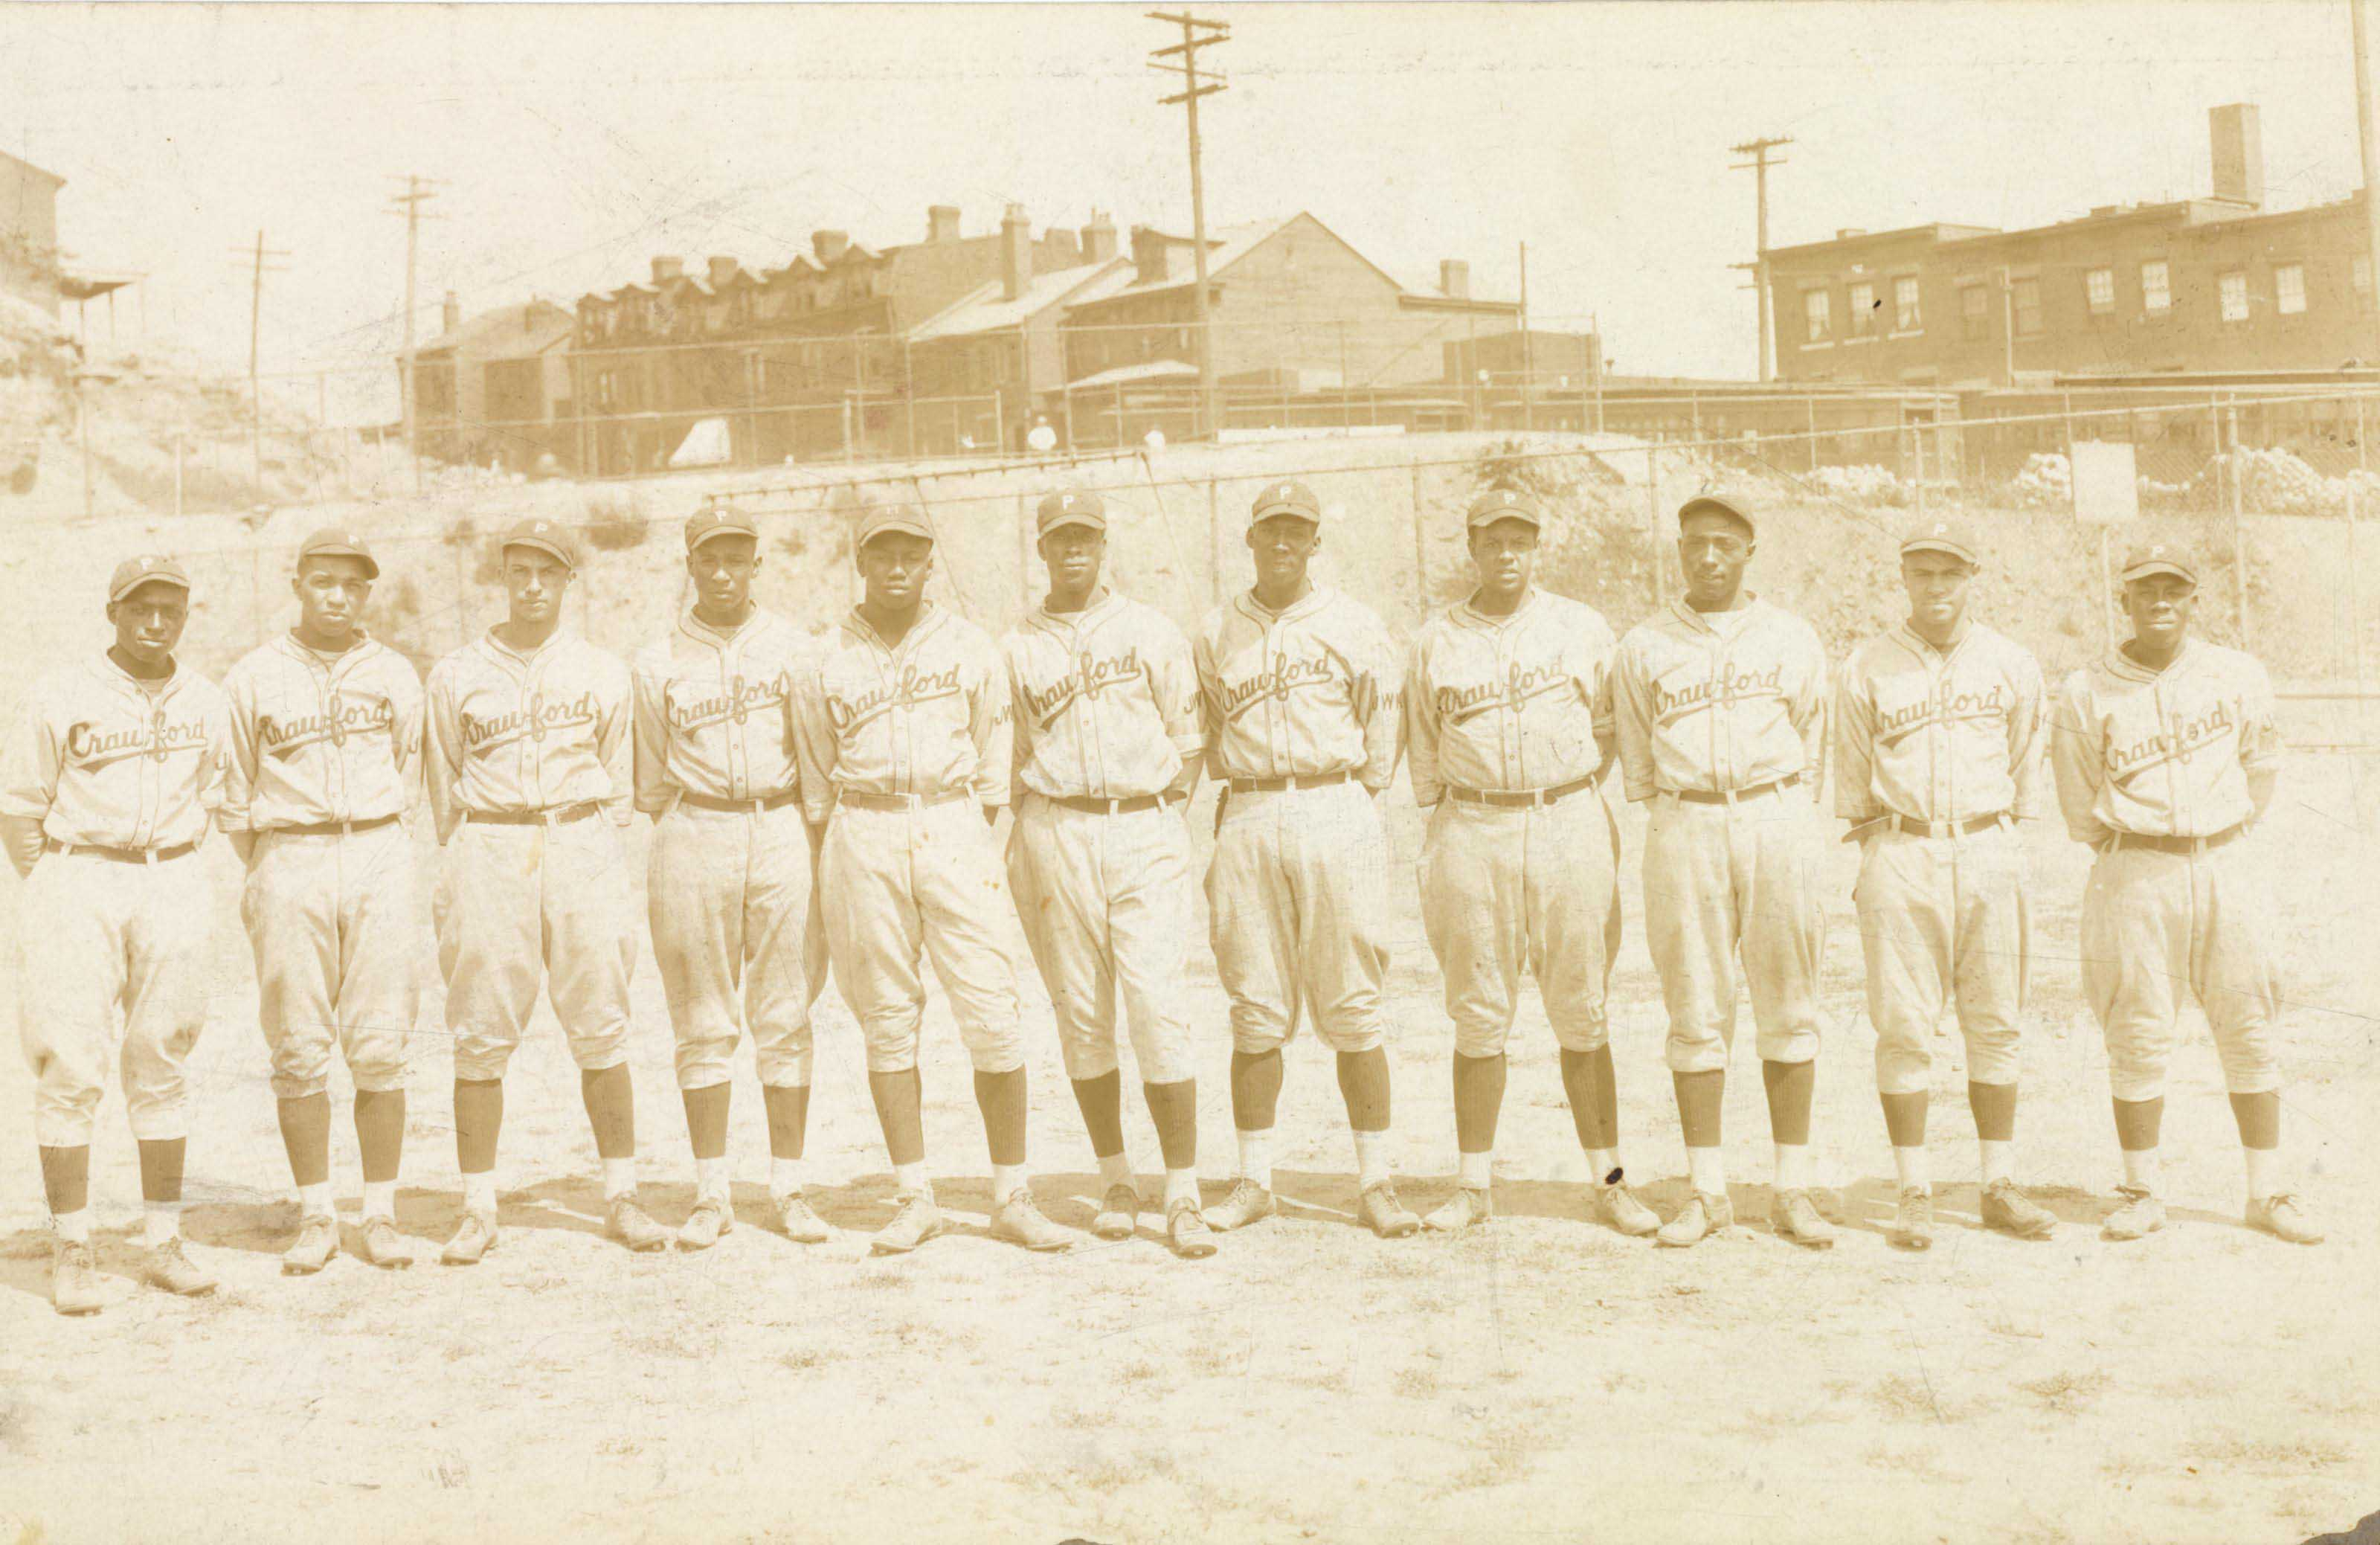 1928 PITTSBURGH CRAWFORDS TEAM